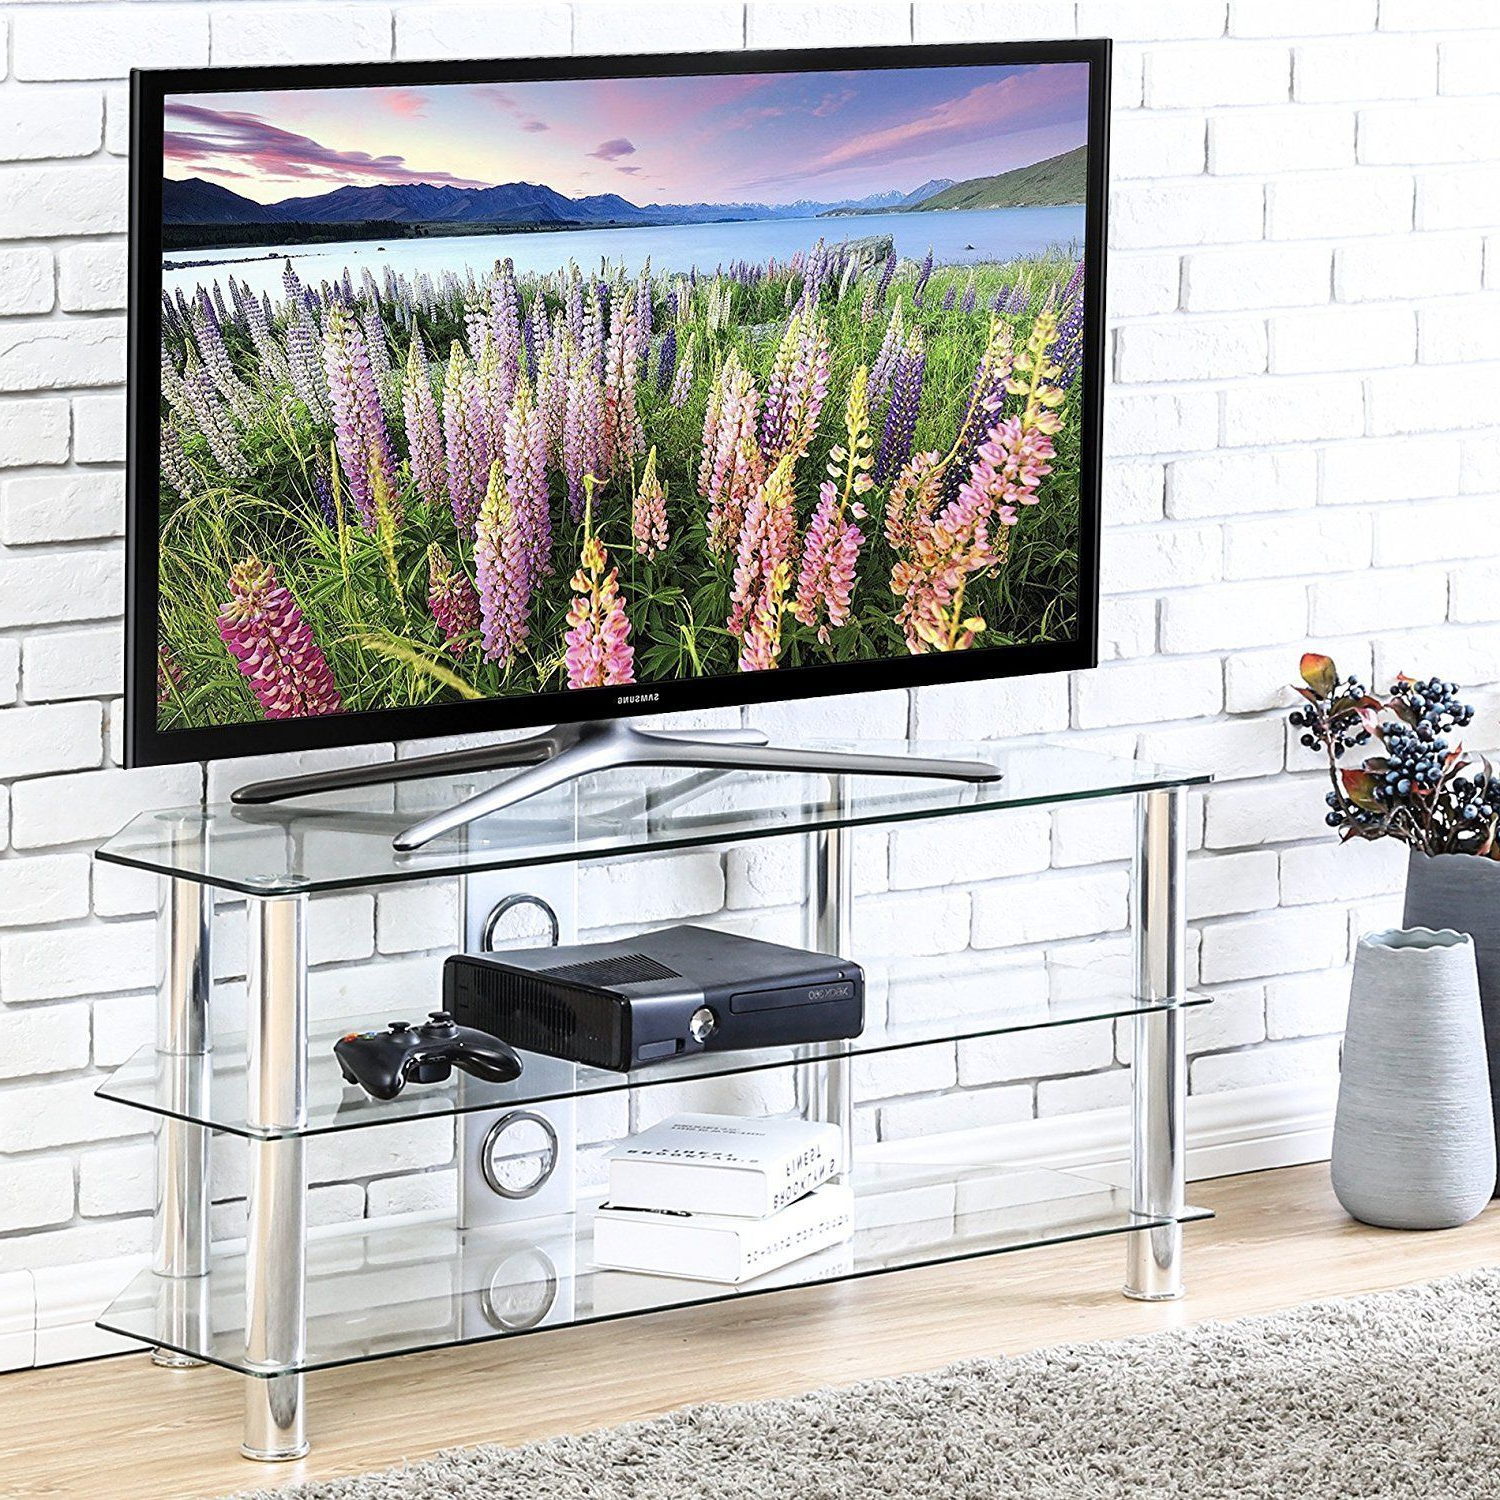 Most Recent Fitueyes Curved Glass Corner Tv Stand For Up To 46Inch Chrome Legs For Corner Tv Stands For 46 Inch Flat Screen (Gallery 13 of 20)